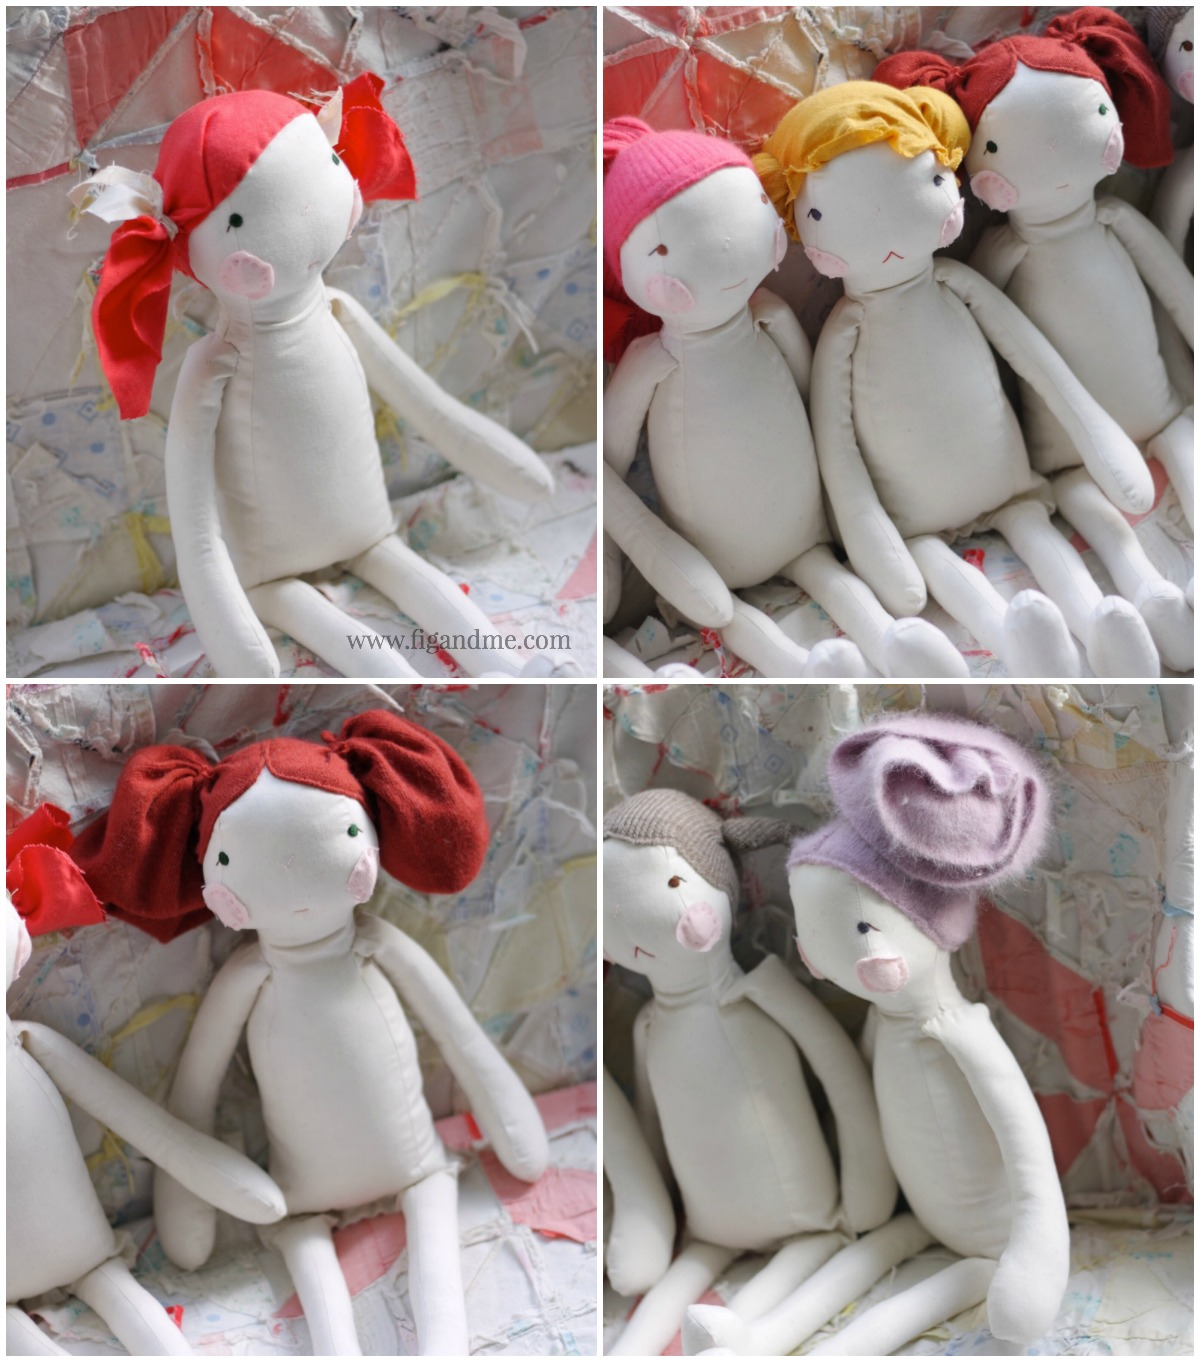 Discussing doll hair: fabric cap on a Cloth Fig doll, via Fig and me. I have used draped linen, and also repurposed cashmere, lambswool, merino, etc.